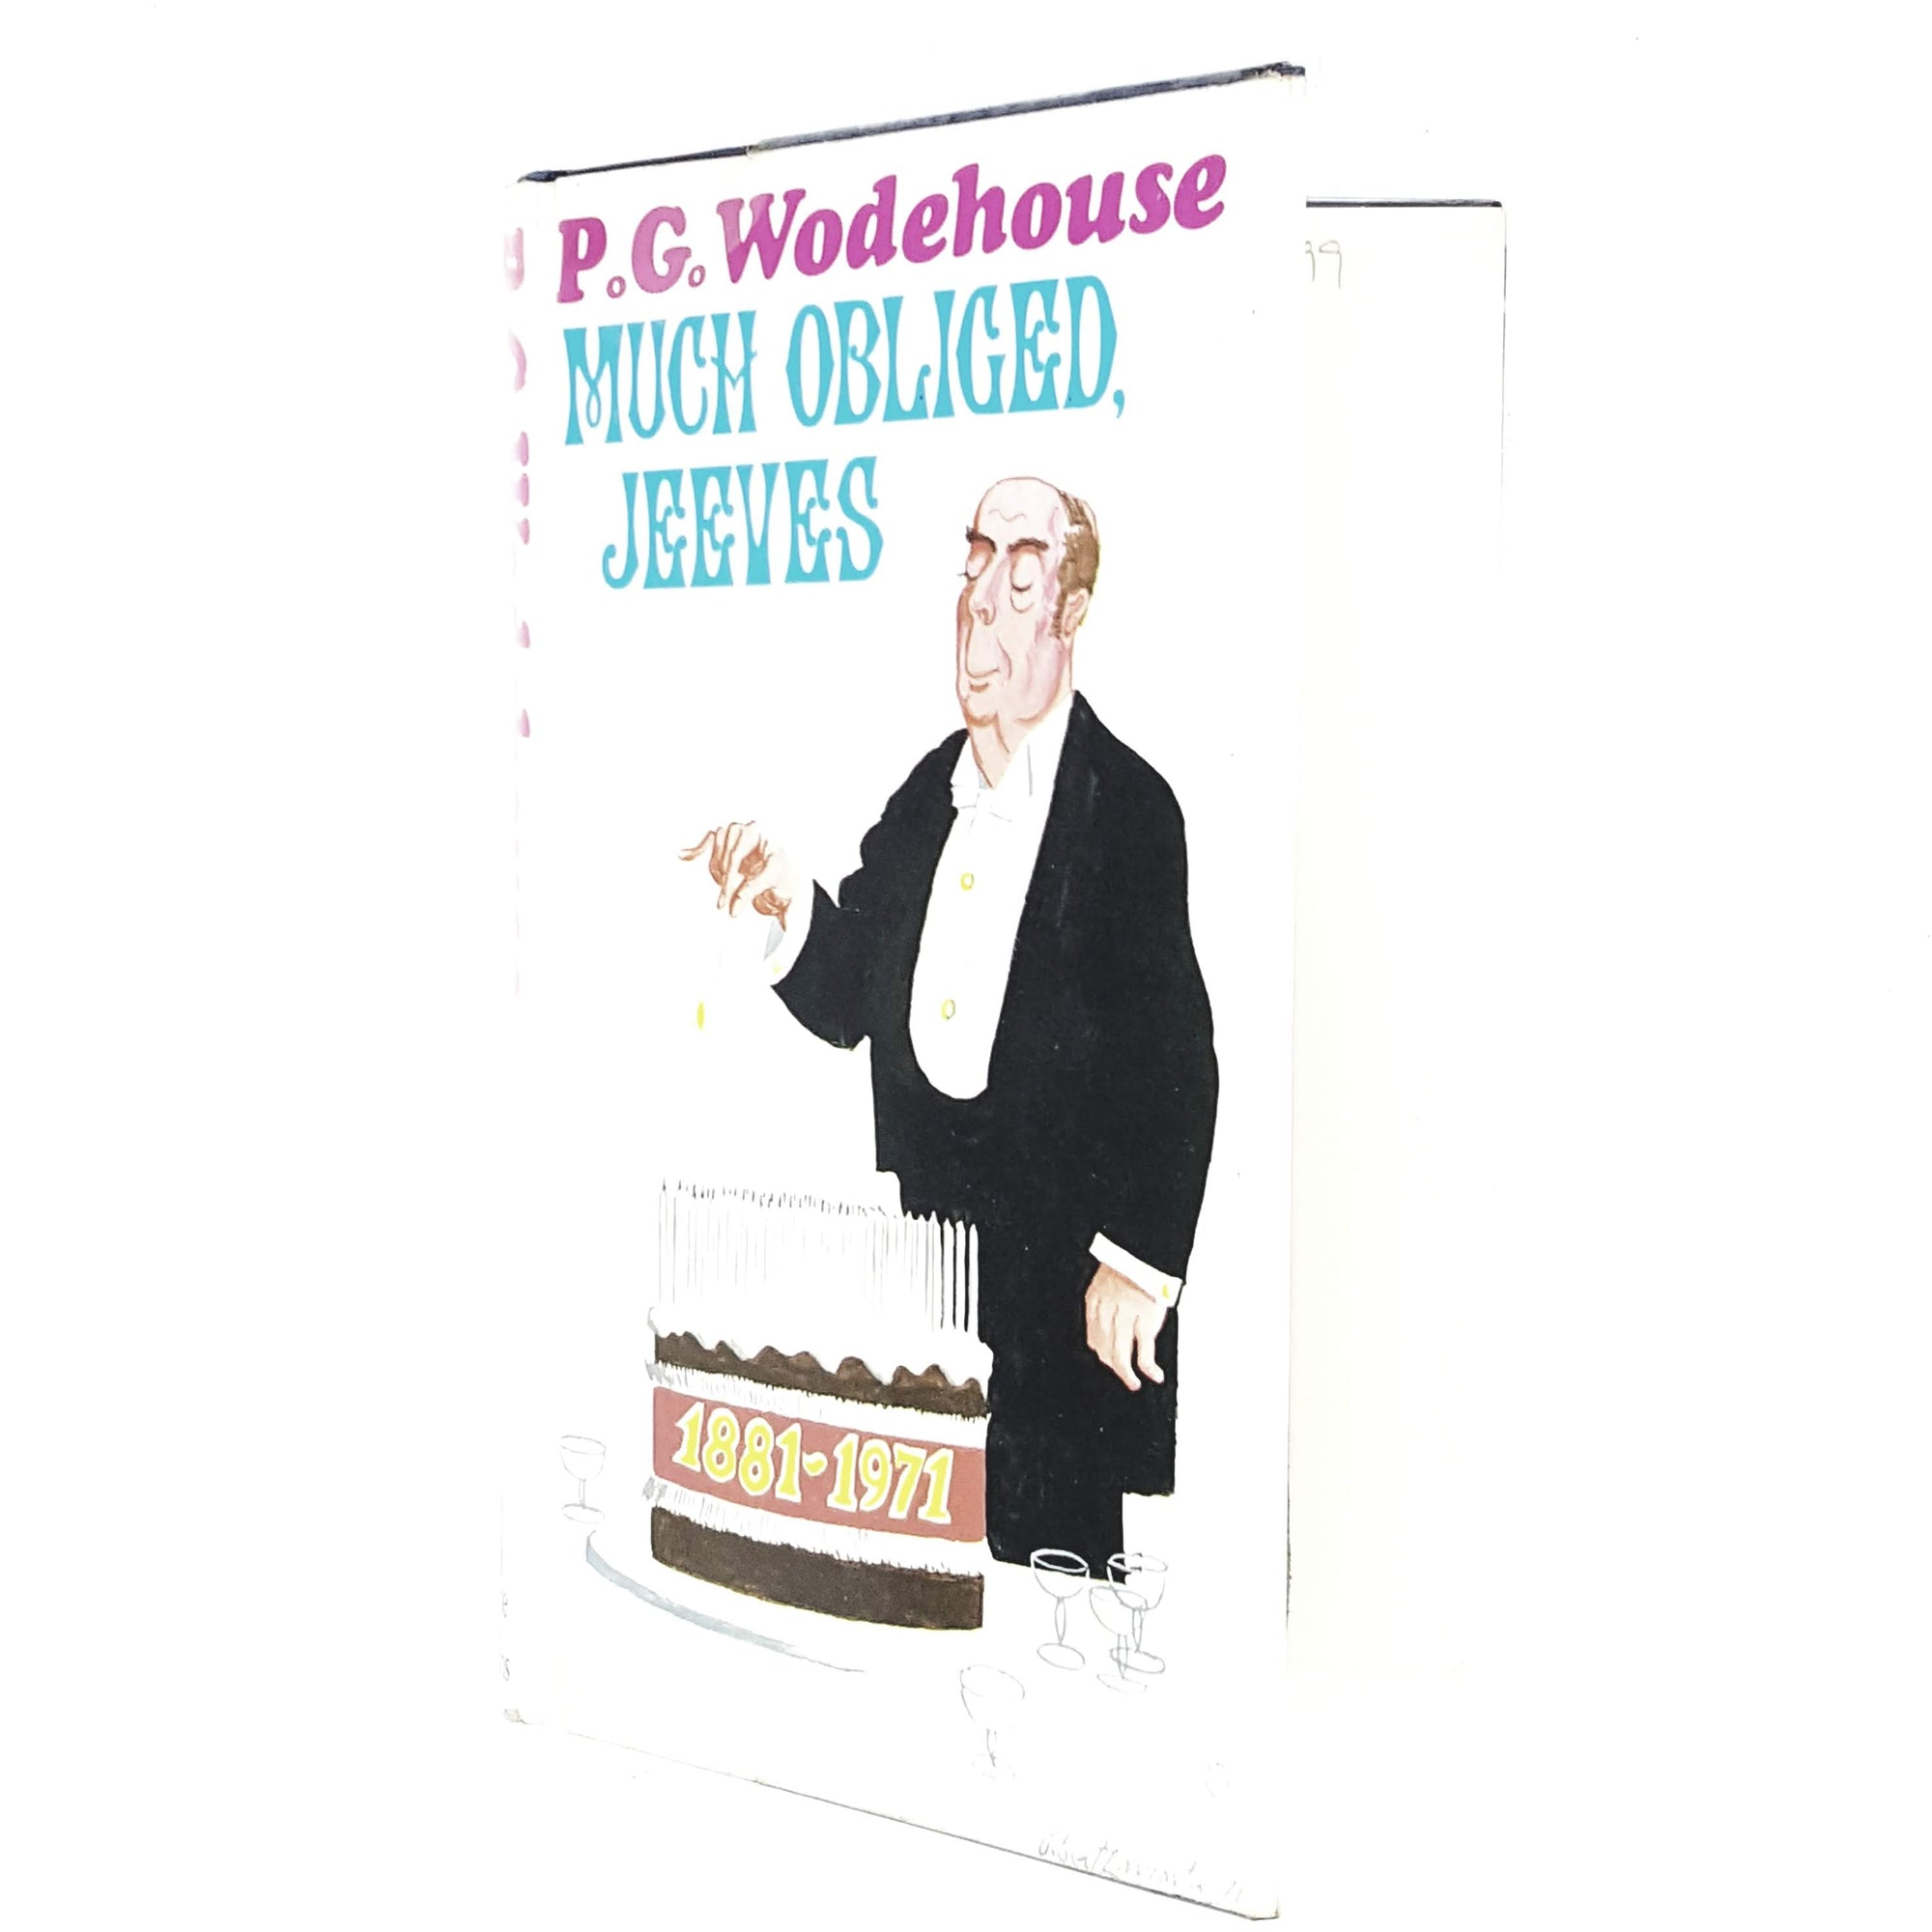 P. G. Wodehouse's Much Obliged, Jeeves 1971